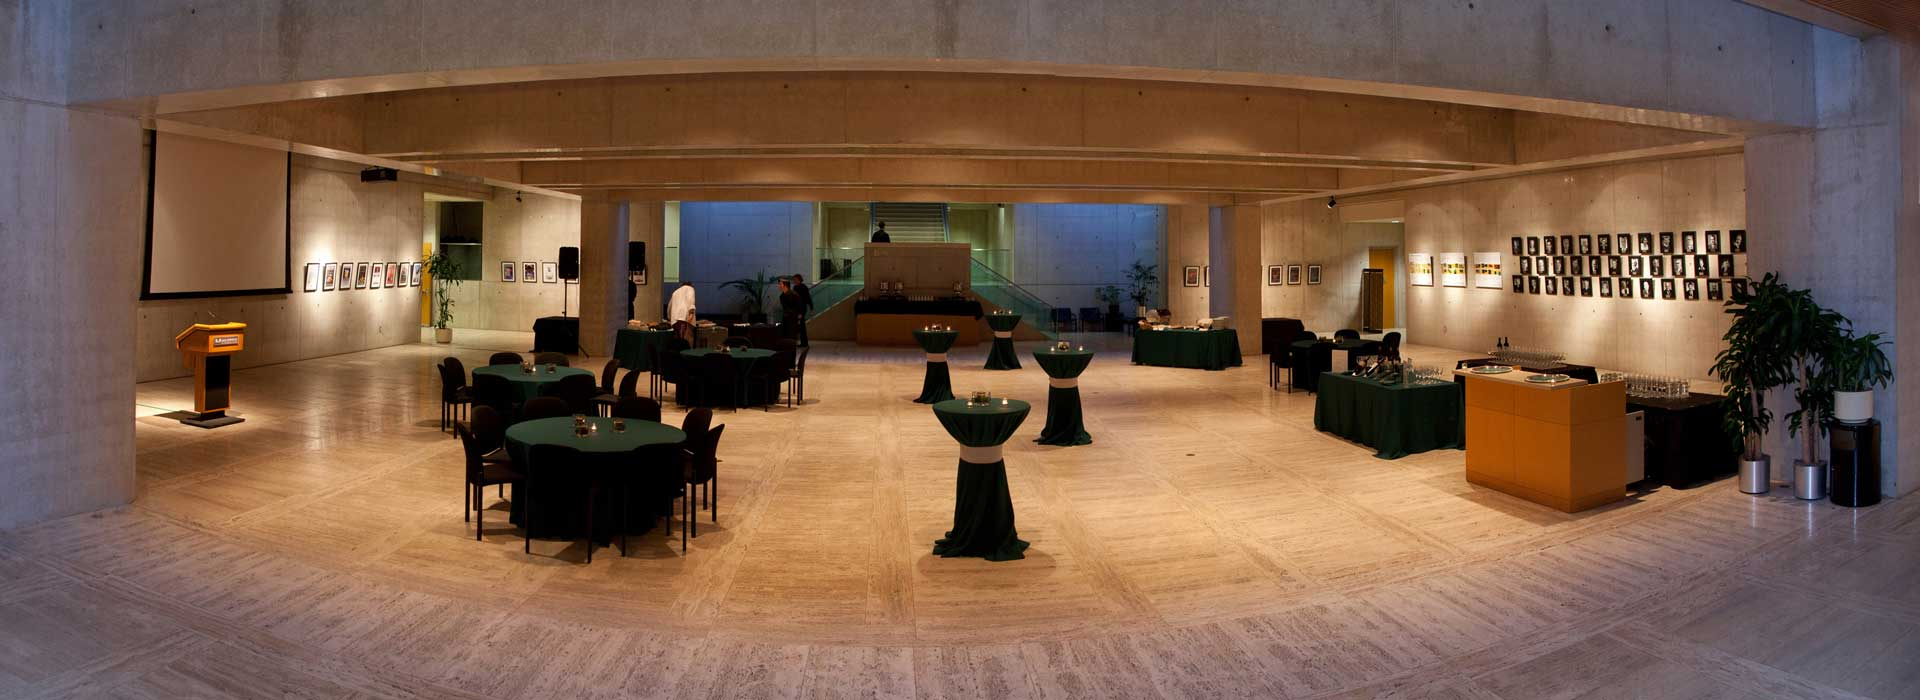 Salk Institute Foyer